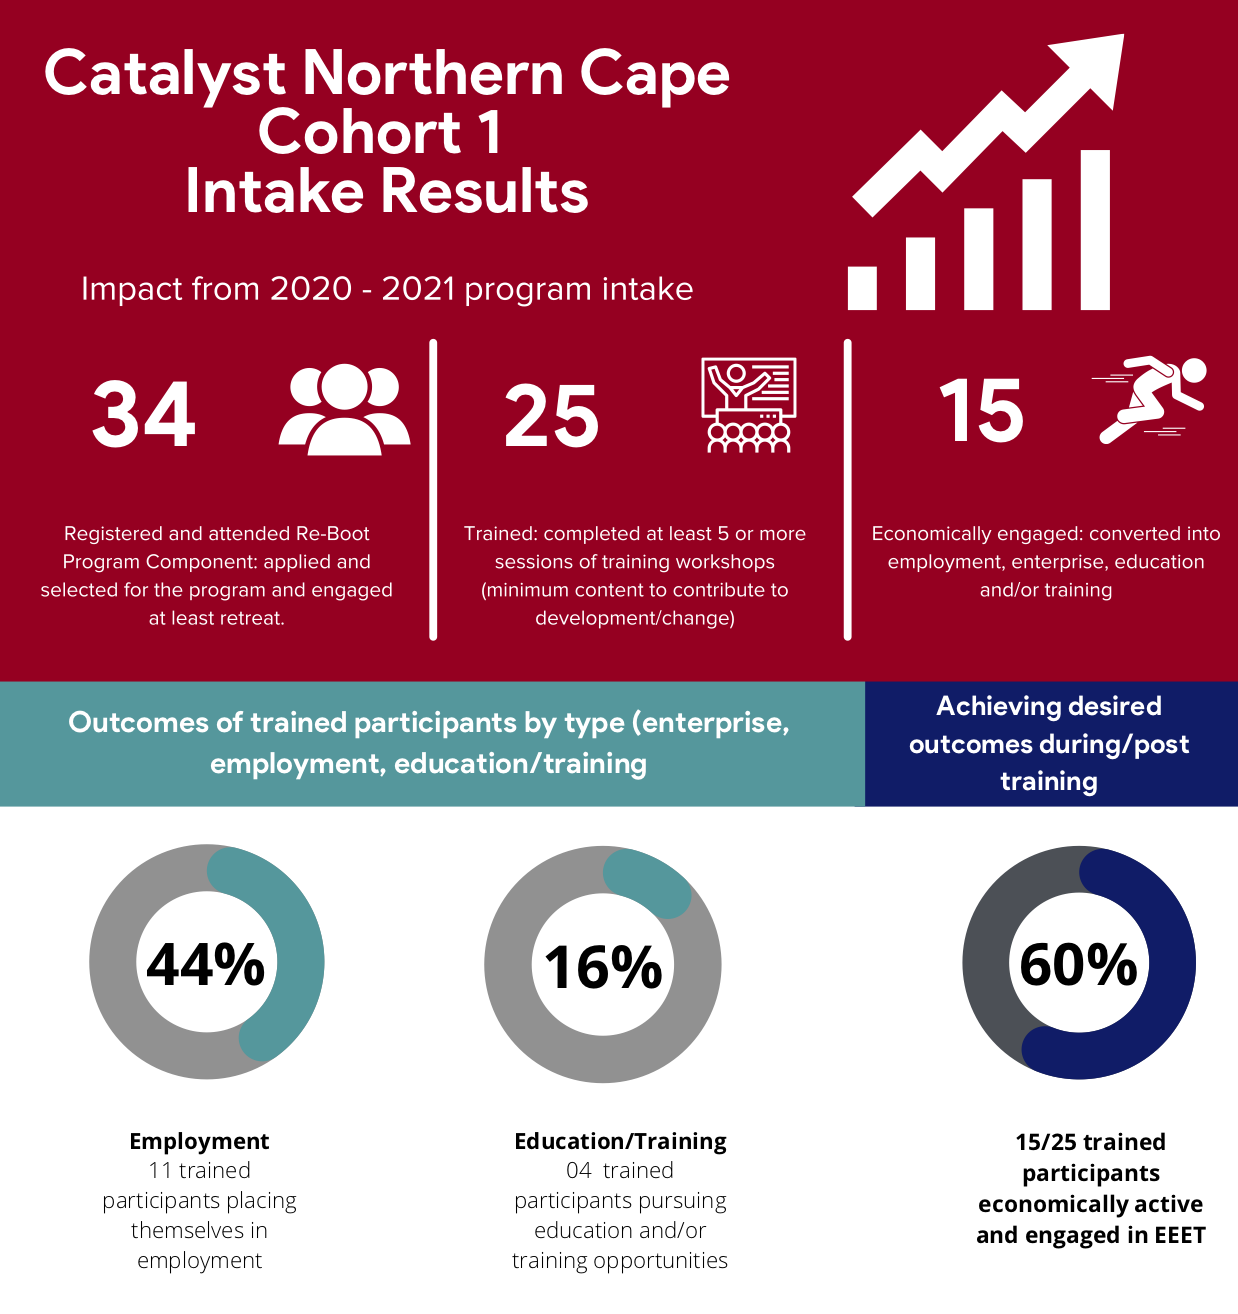 2020-21 Catalyst Northern Cape Cohort 1 Highlights